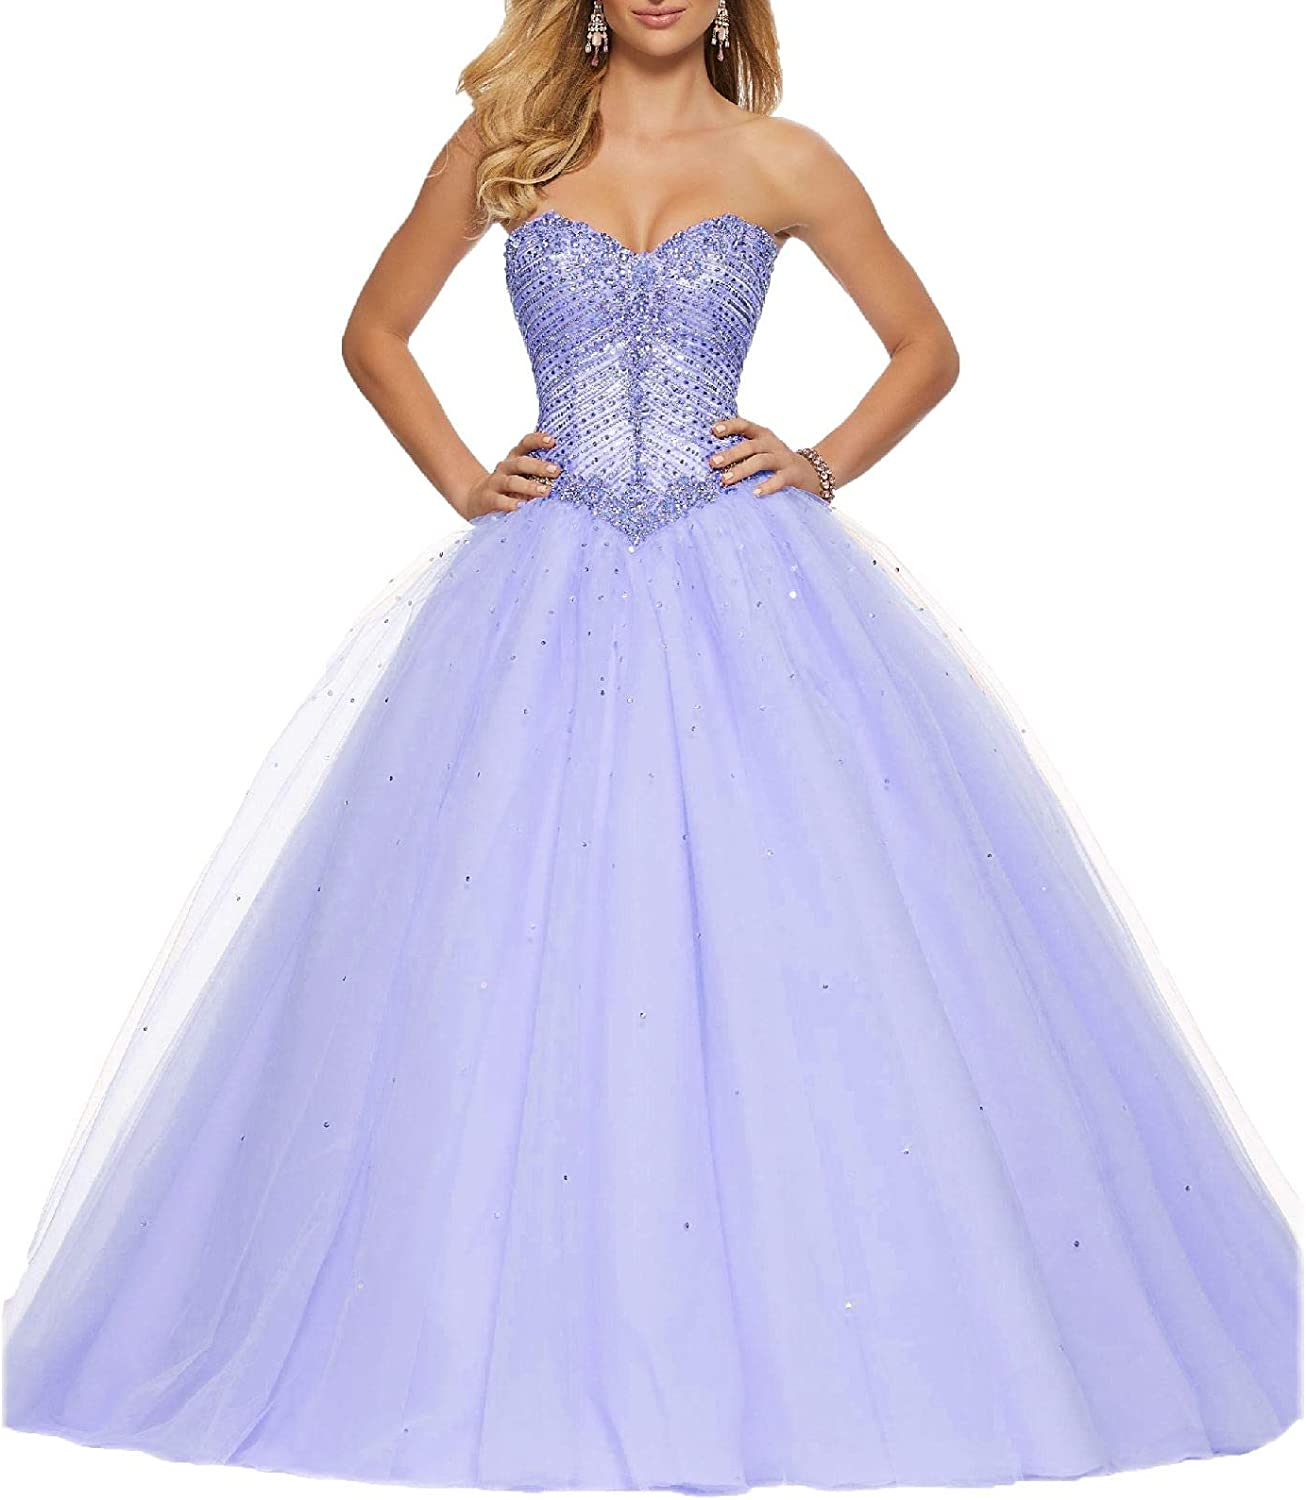 Wanshaqin Crystals HandBeaded Sequins Sweetheart Formal Evening Gown Wedding Dress Plus Size for Special Occasions